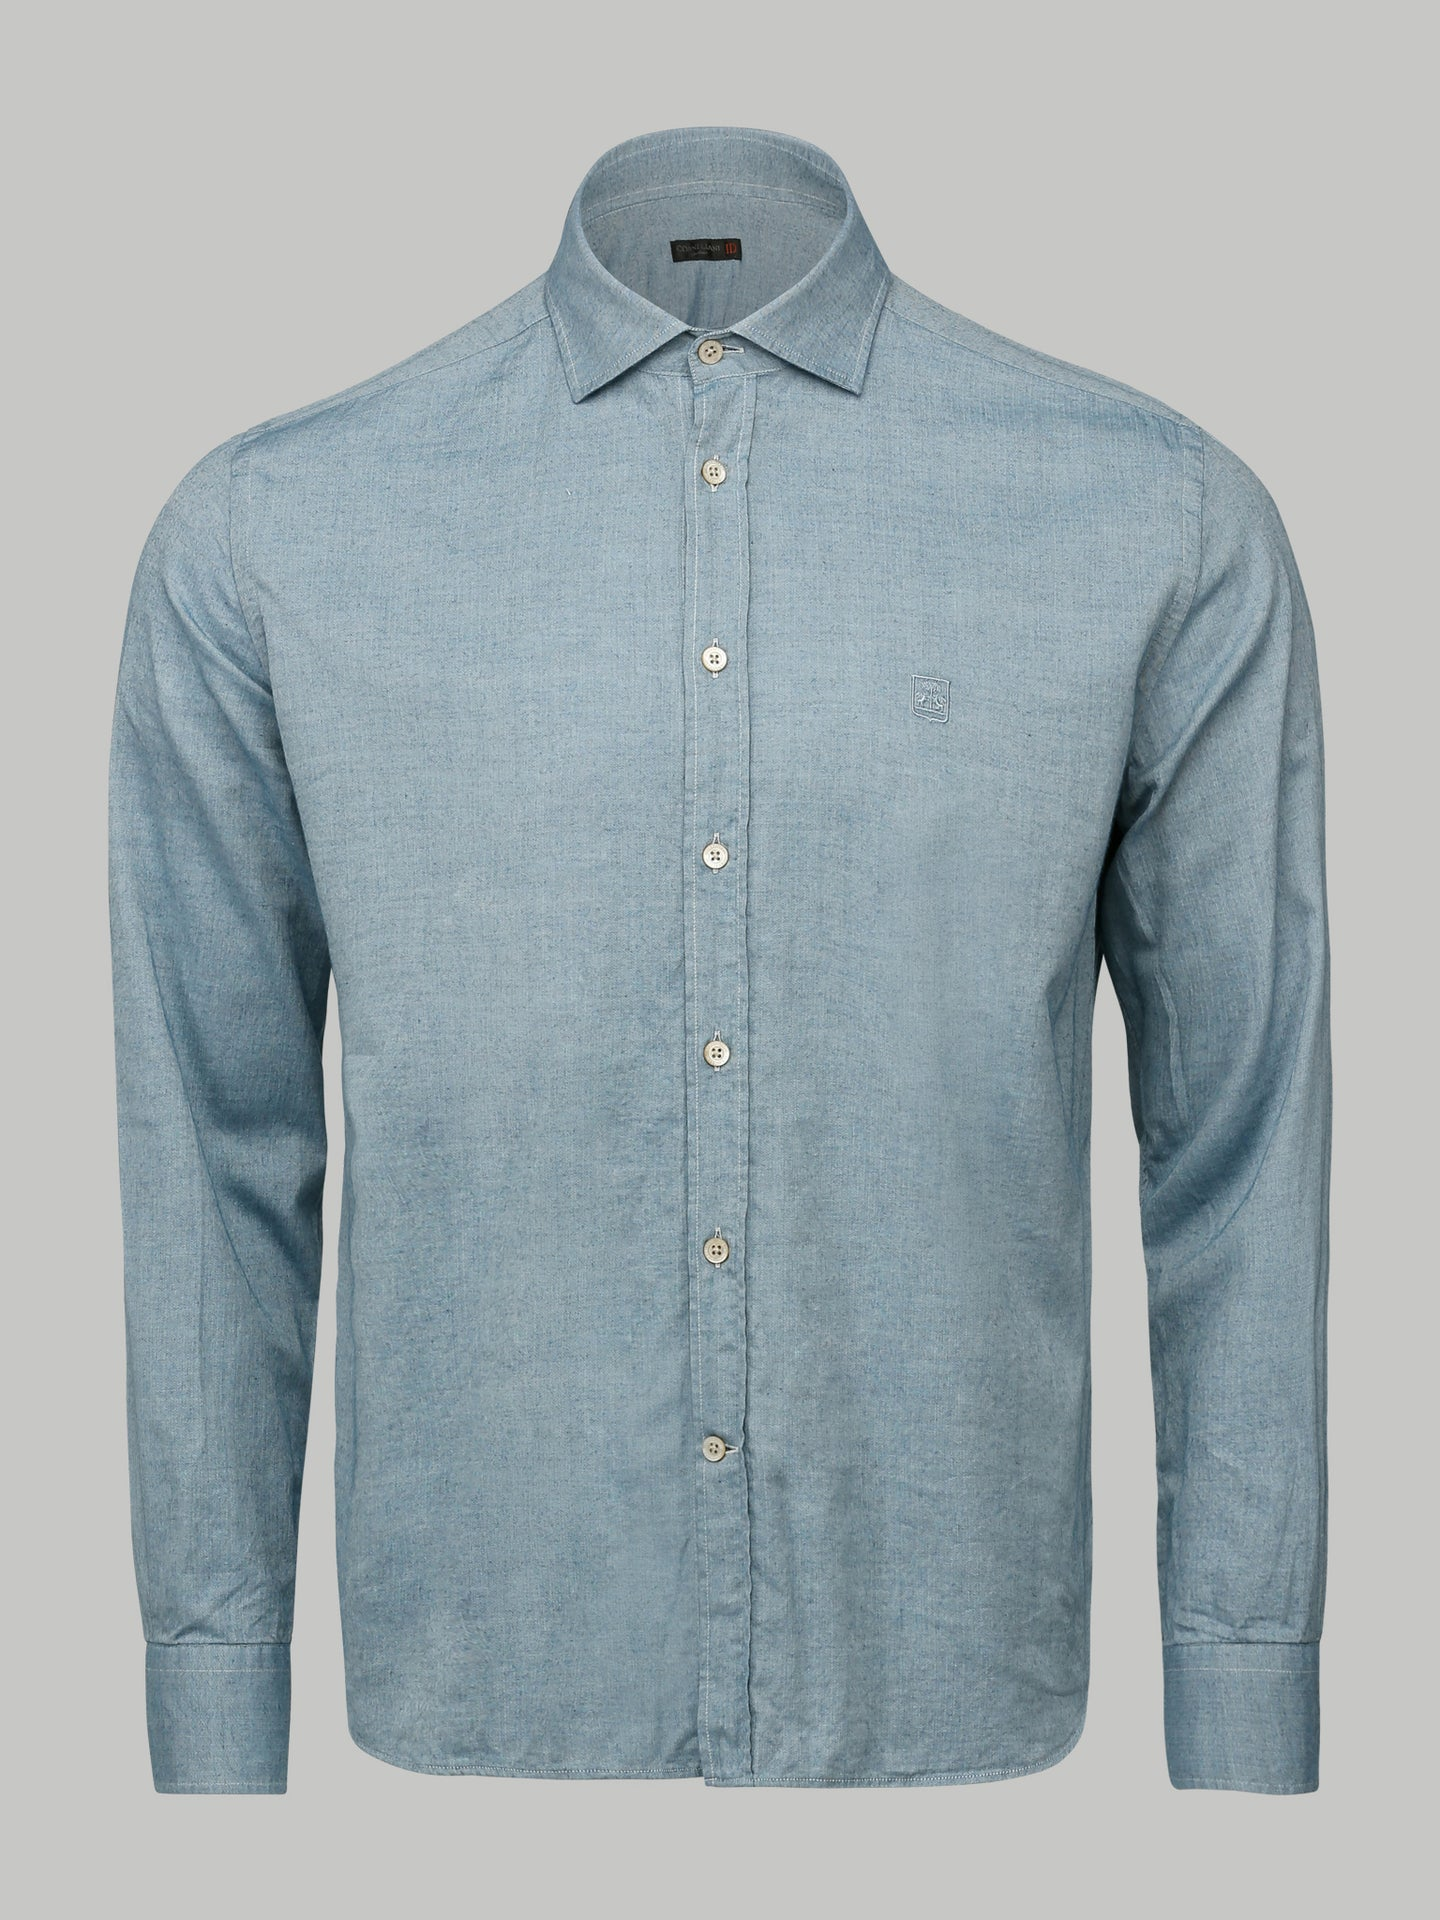 Corneliani Cutaway Collar Shirt (Steel Blue)